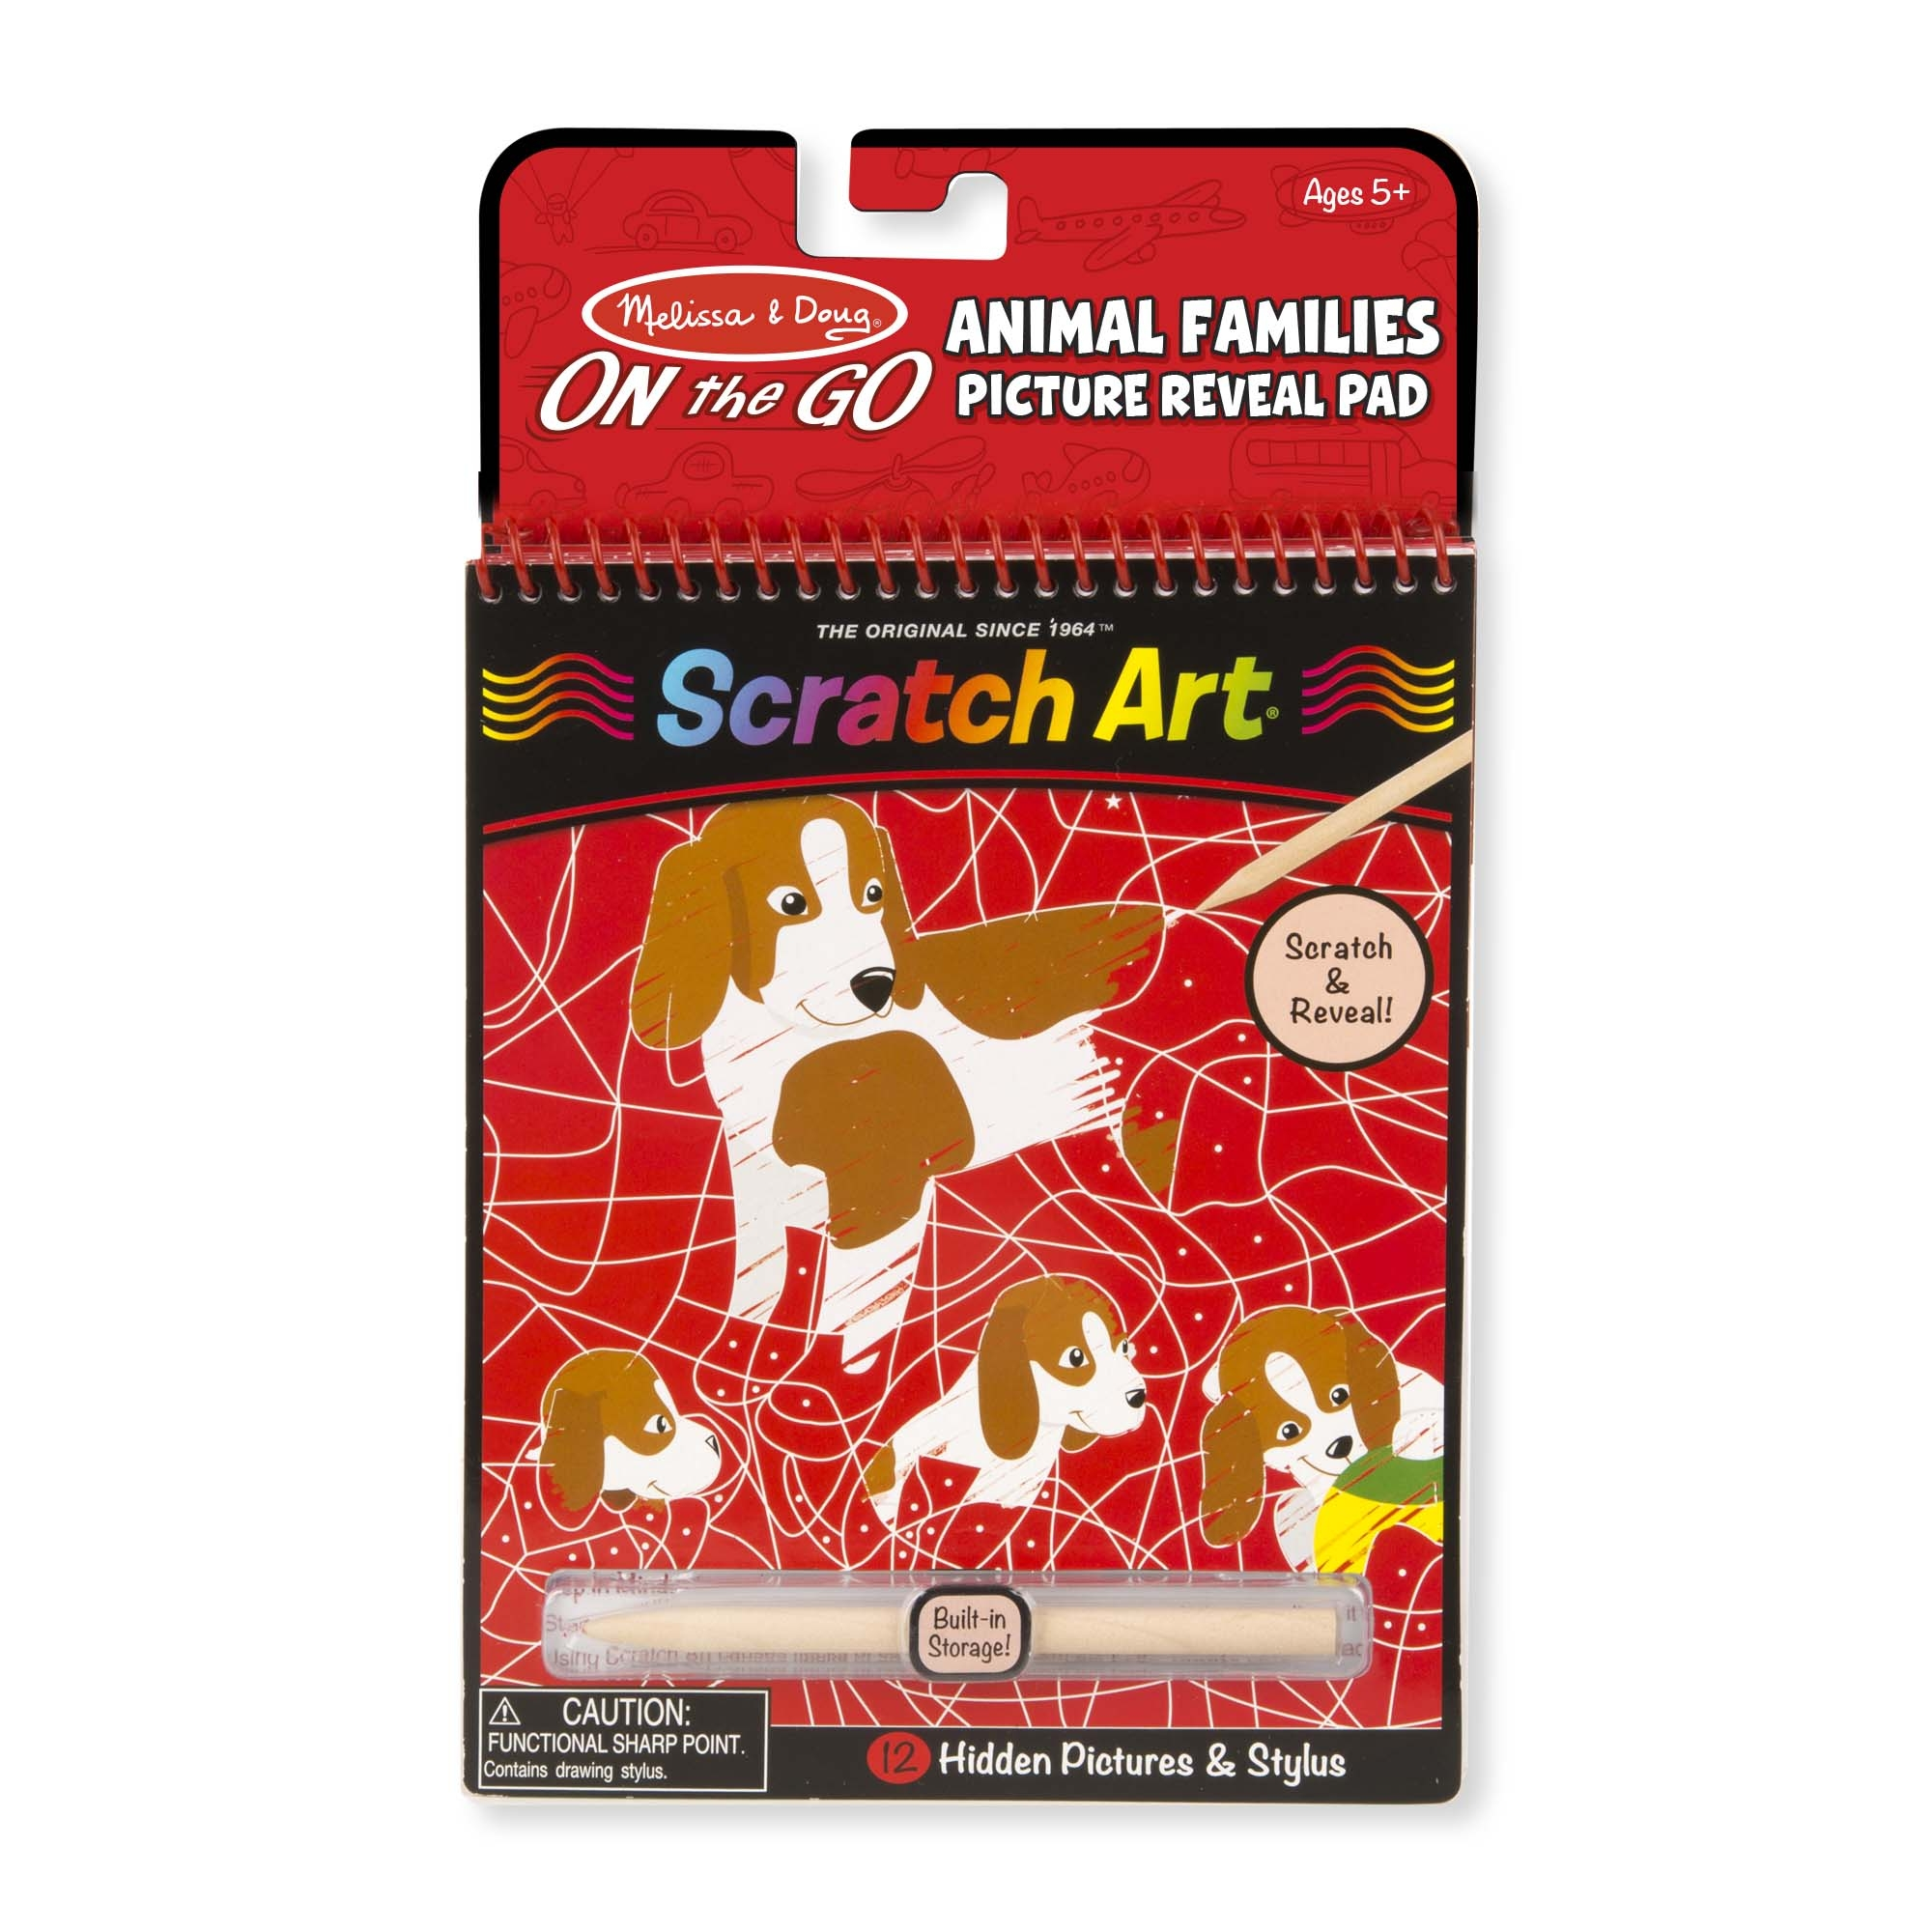 On the Go Scratch Art Animal Families HiddenPicture Pad